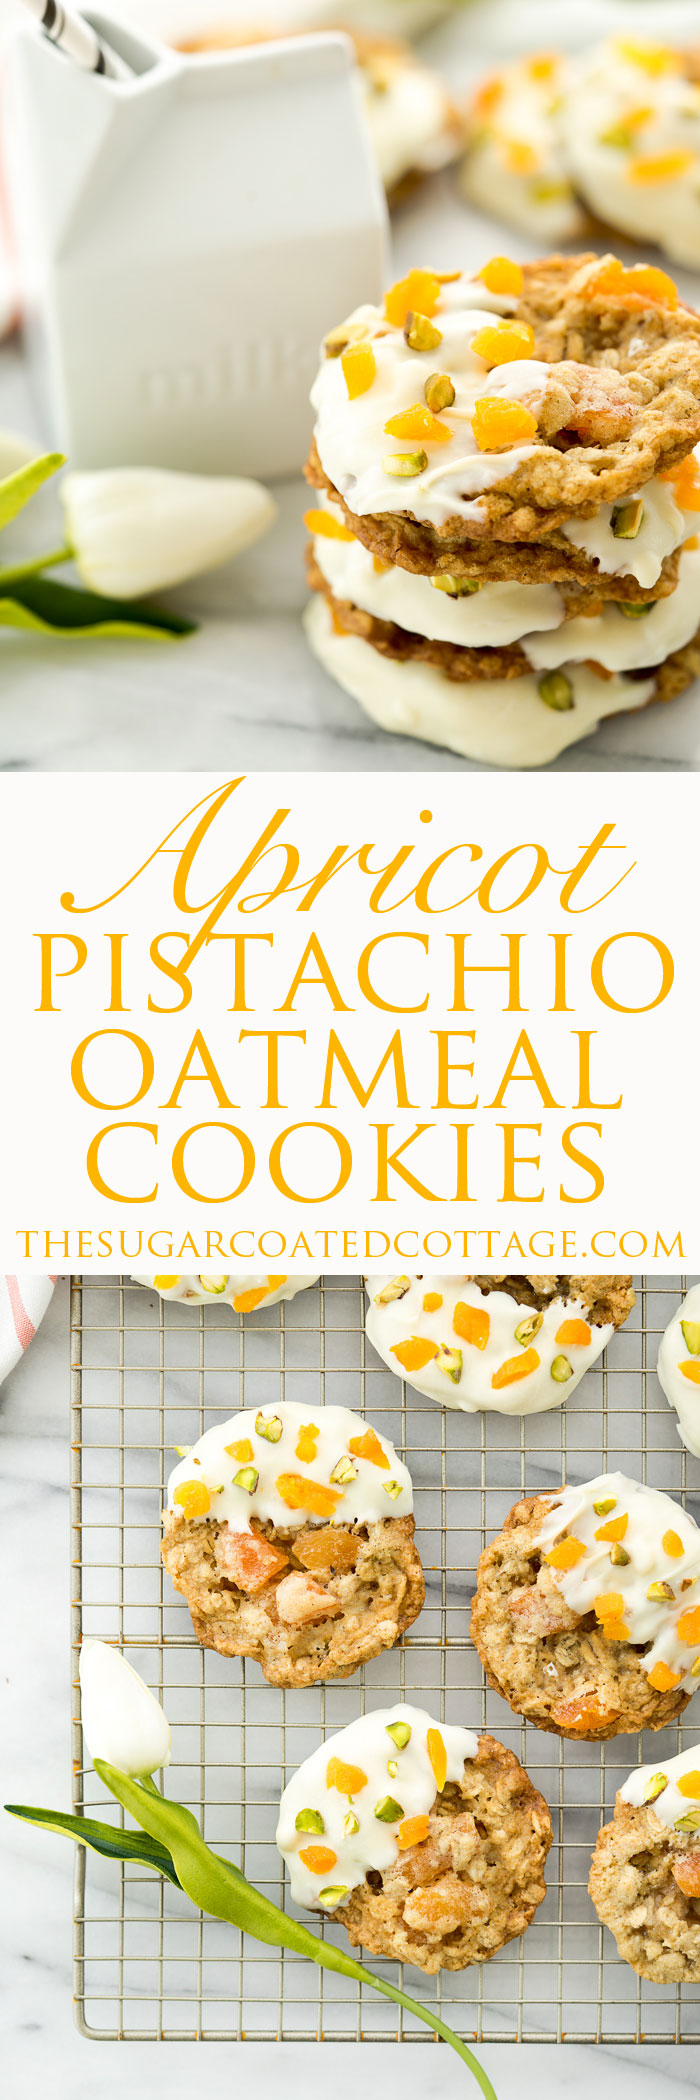 Apricot Pistachio Oatmeal Cookies. These oatmeal cookies are studded with rough chopped dried apricots and roasted, salted pistachios. | thesugarcoatedcottage.com #cookie #recipe #oatmealcookie #apricots #pistachio